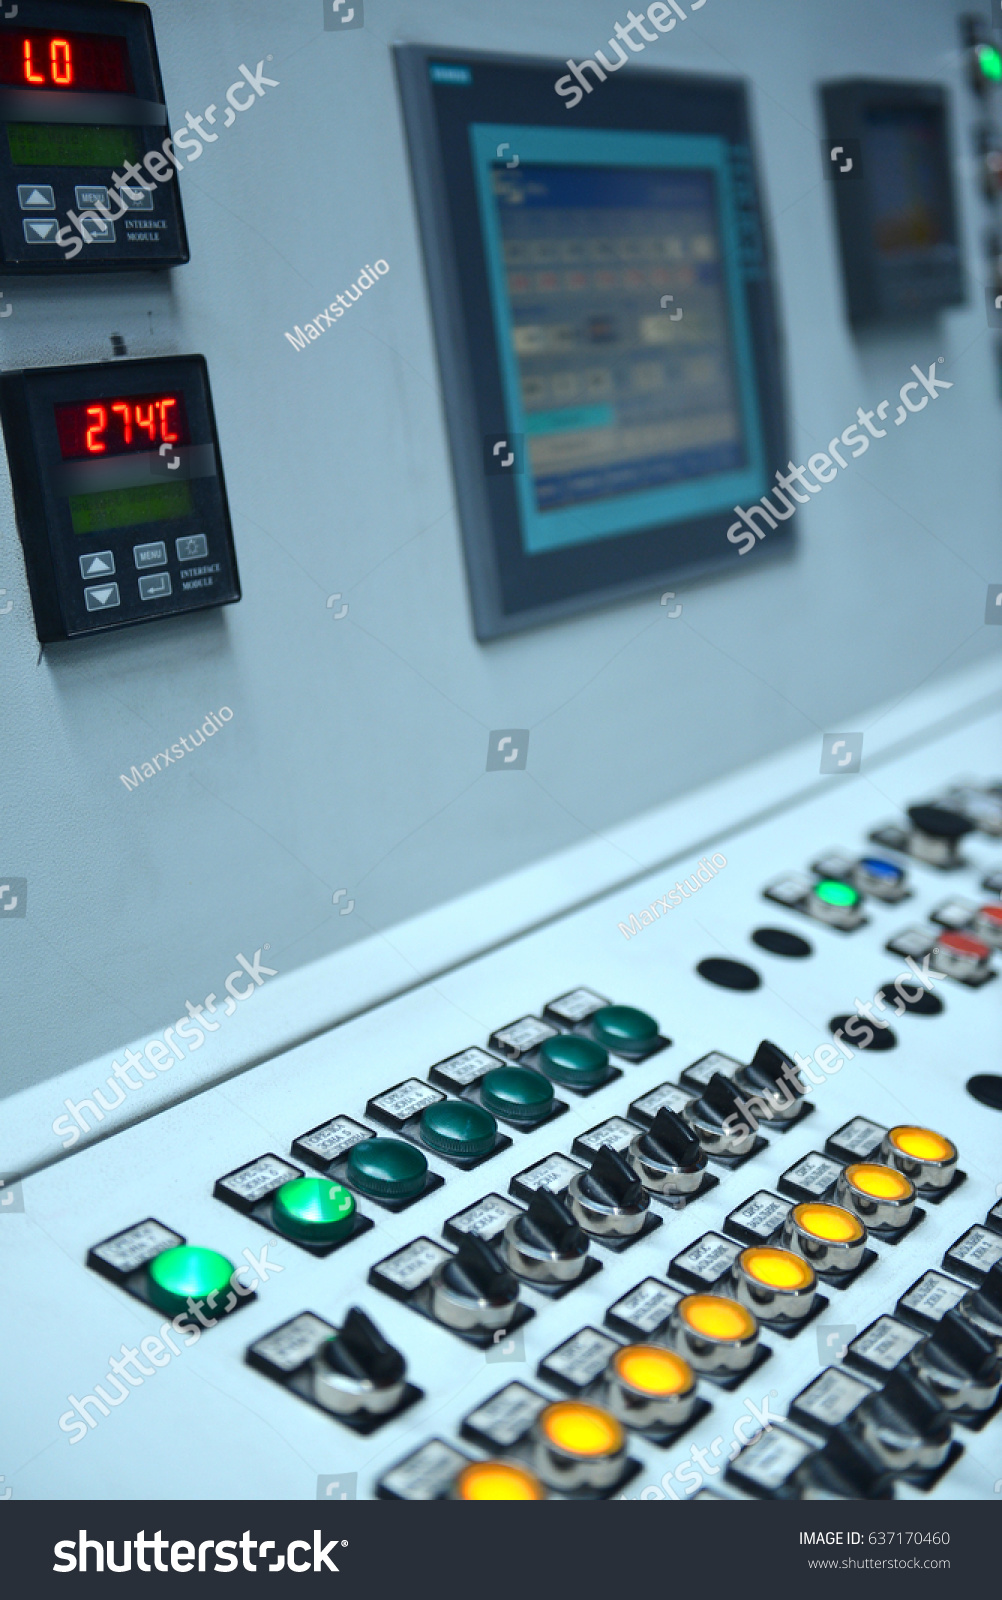 Electrical Control Panel Buttons Levers Stock Photo (Safe to Use ...